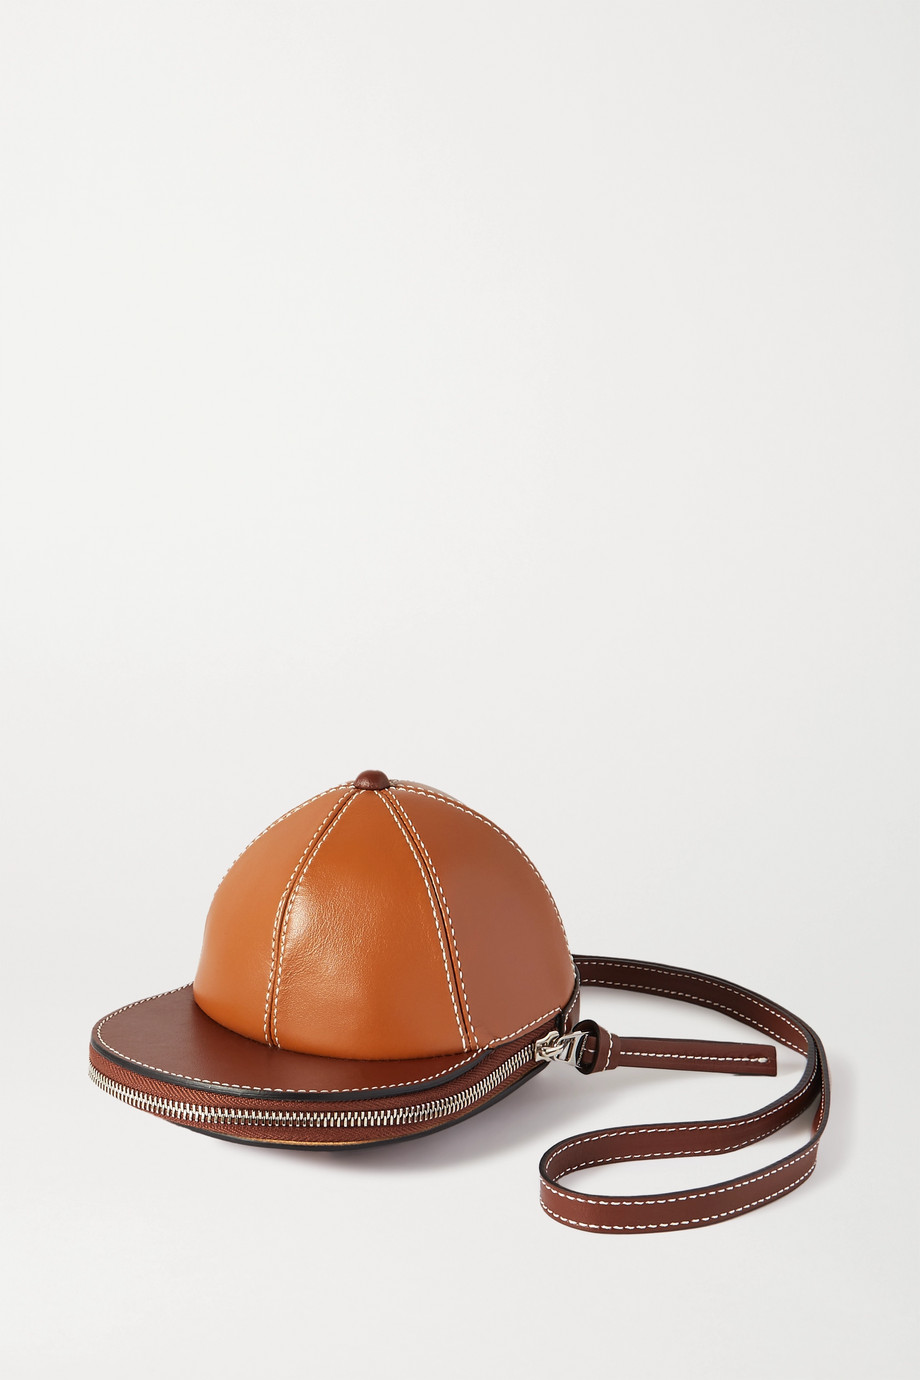 JW ANDERSON Cap leather shoulder bag